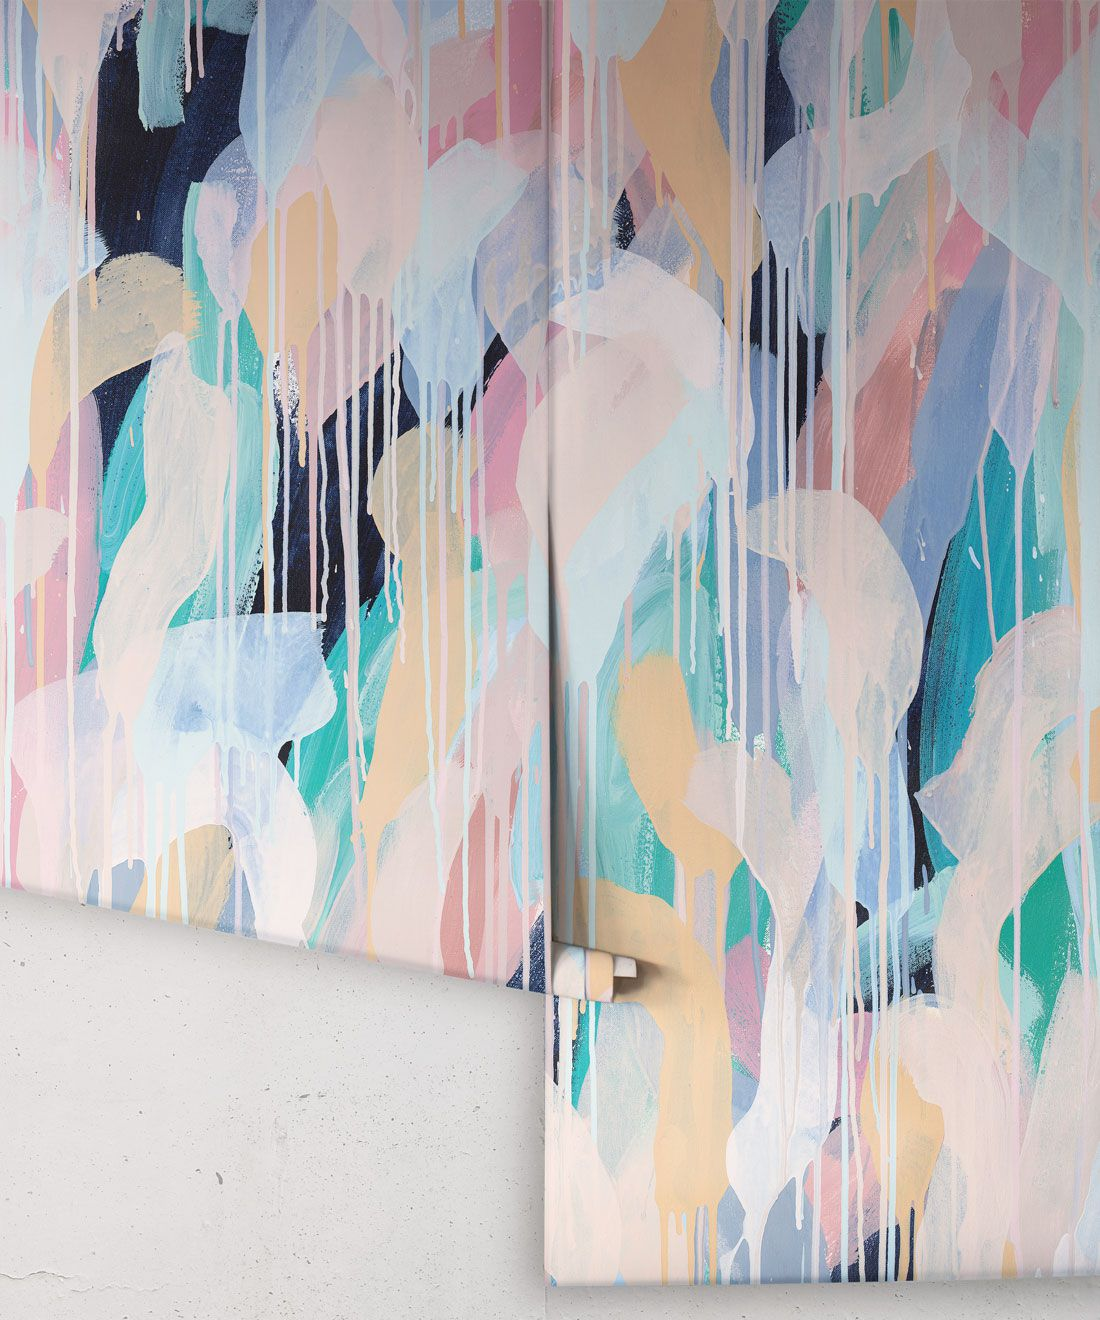 Blue Moon Wallpaper •Colourful Painterly Wallpaper • Tiff Manuell • Abstract Expressionist Wallpaper • Rolls